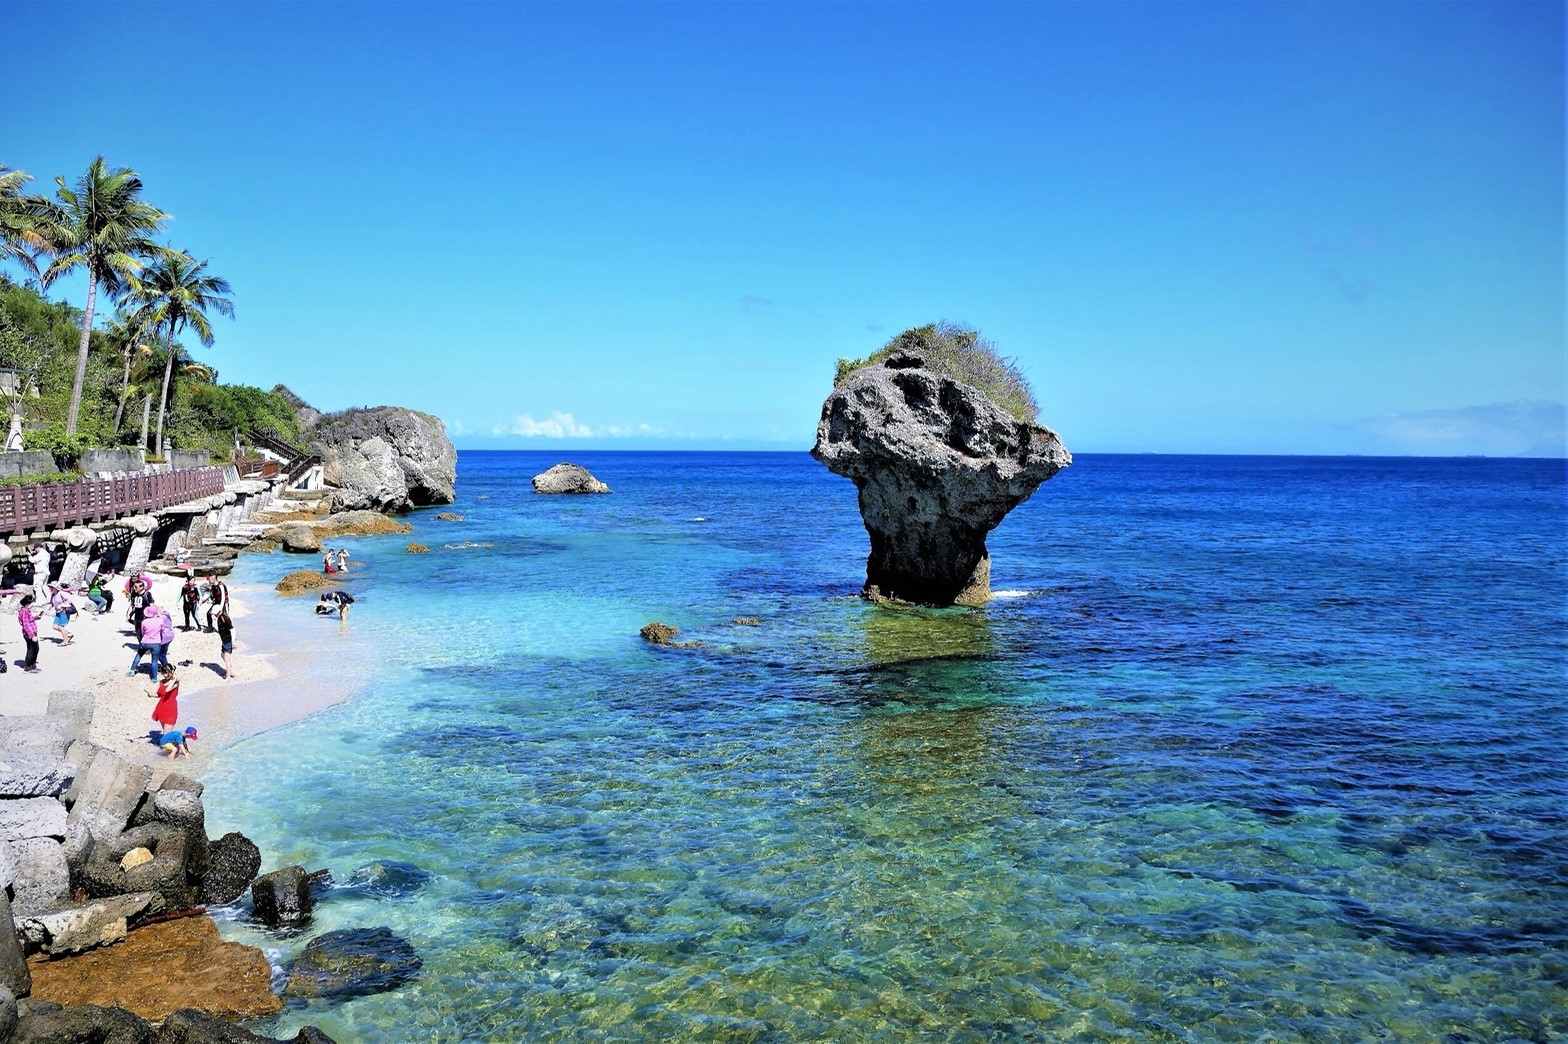 Vase Rock (花瓶石) in Liuqiu is often the first destination for visitors. (Image: Courtesy of Xue Jiancheng)